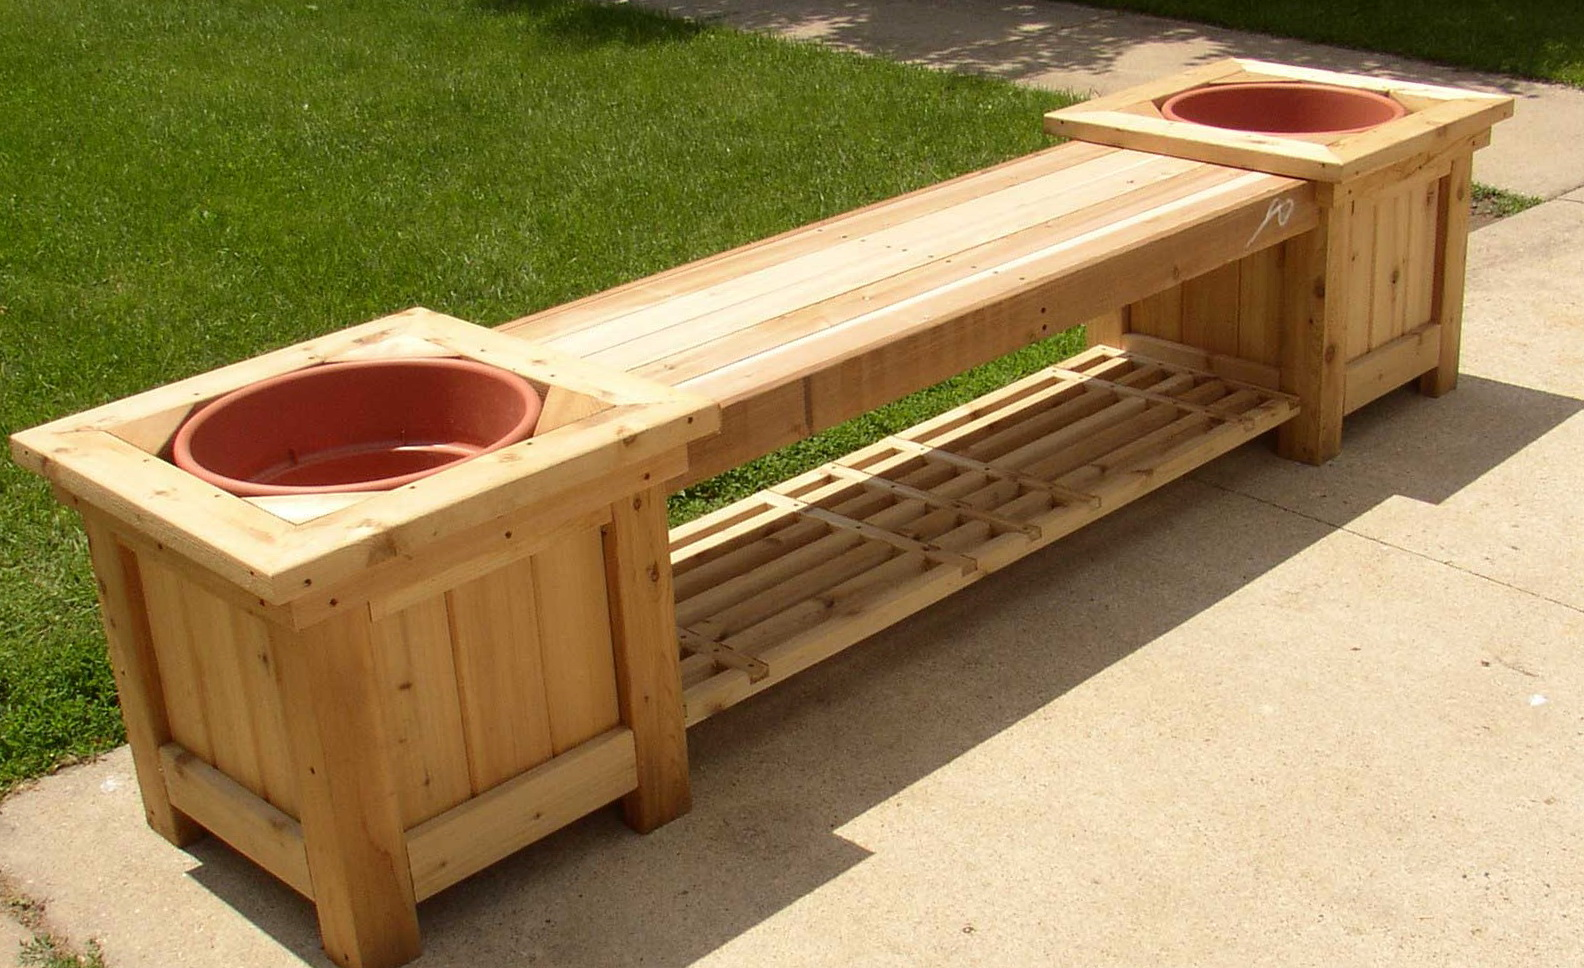 Storage Bench Ideas Outdoor Storage Bench With Planters Home Design Ideas